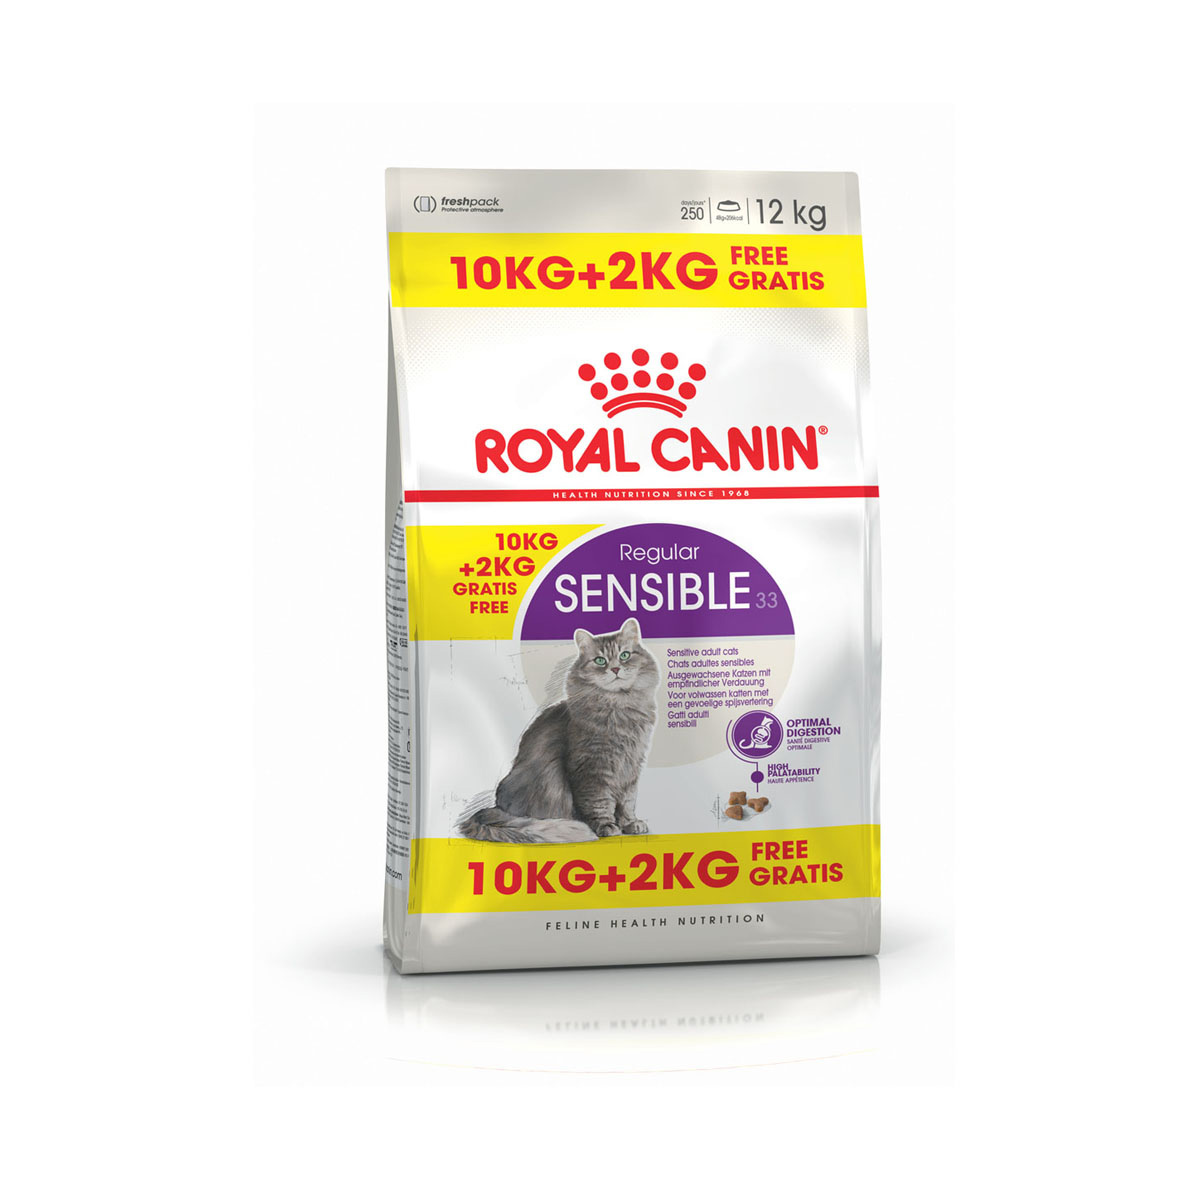 221334 1 royal canin sensible trockenfu